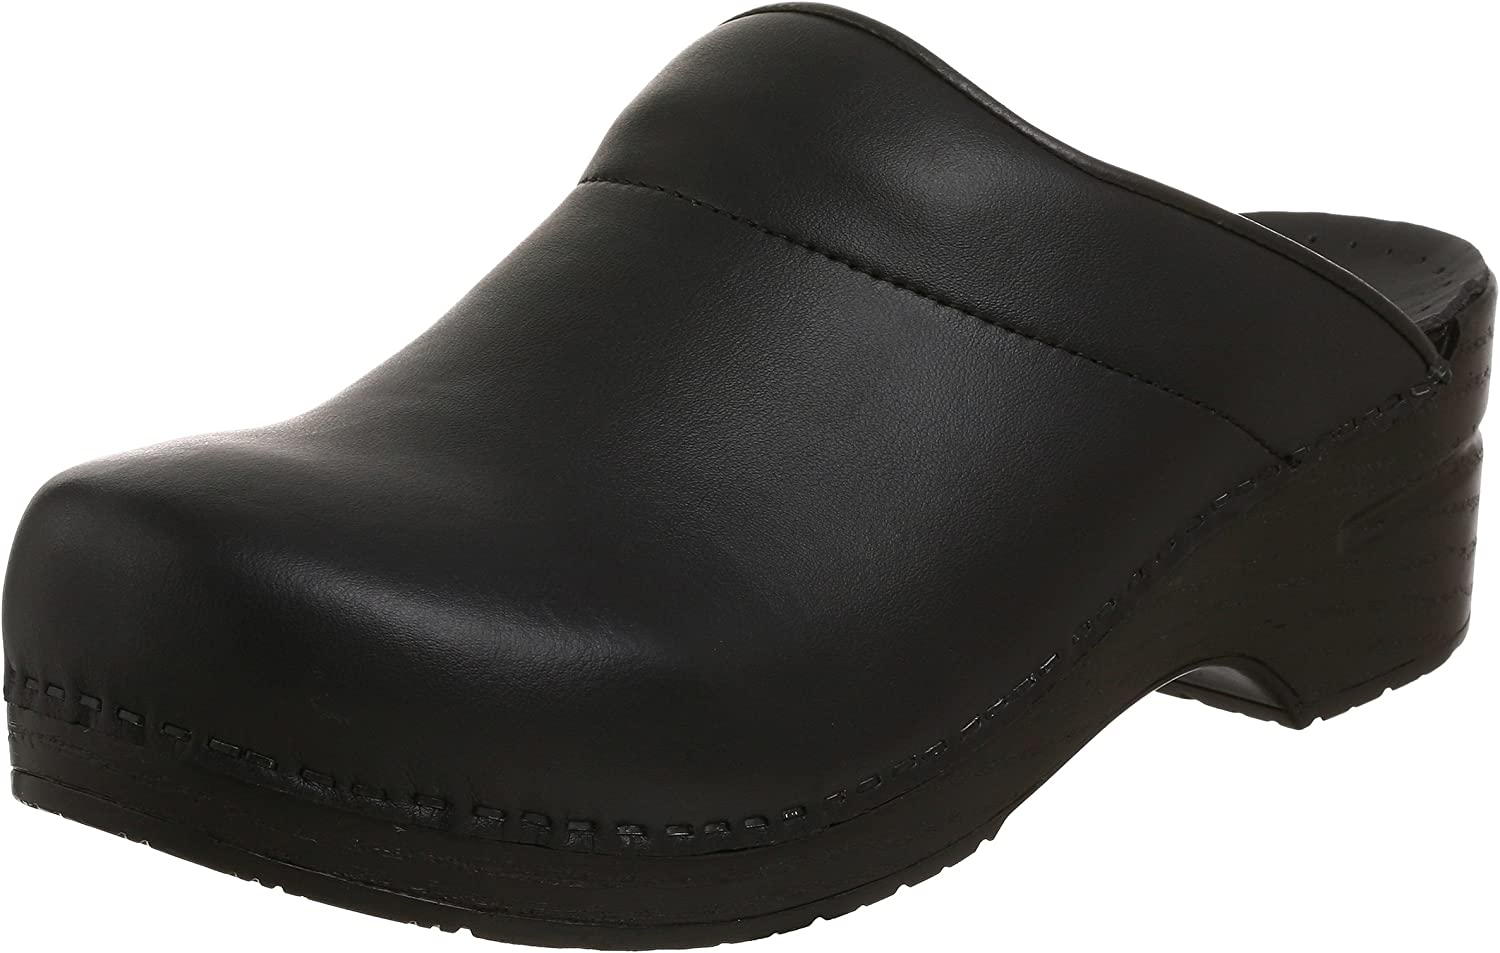 Dansko 40 Tooled Leather To Assure Years Of Trouble-Free Service Clothing, Shoes & Accessories Women's Shoes